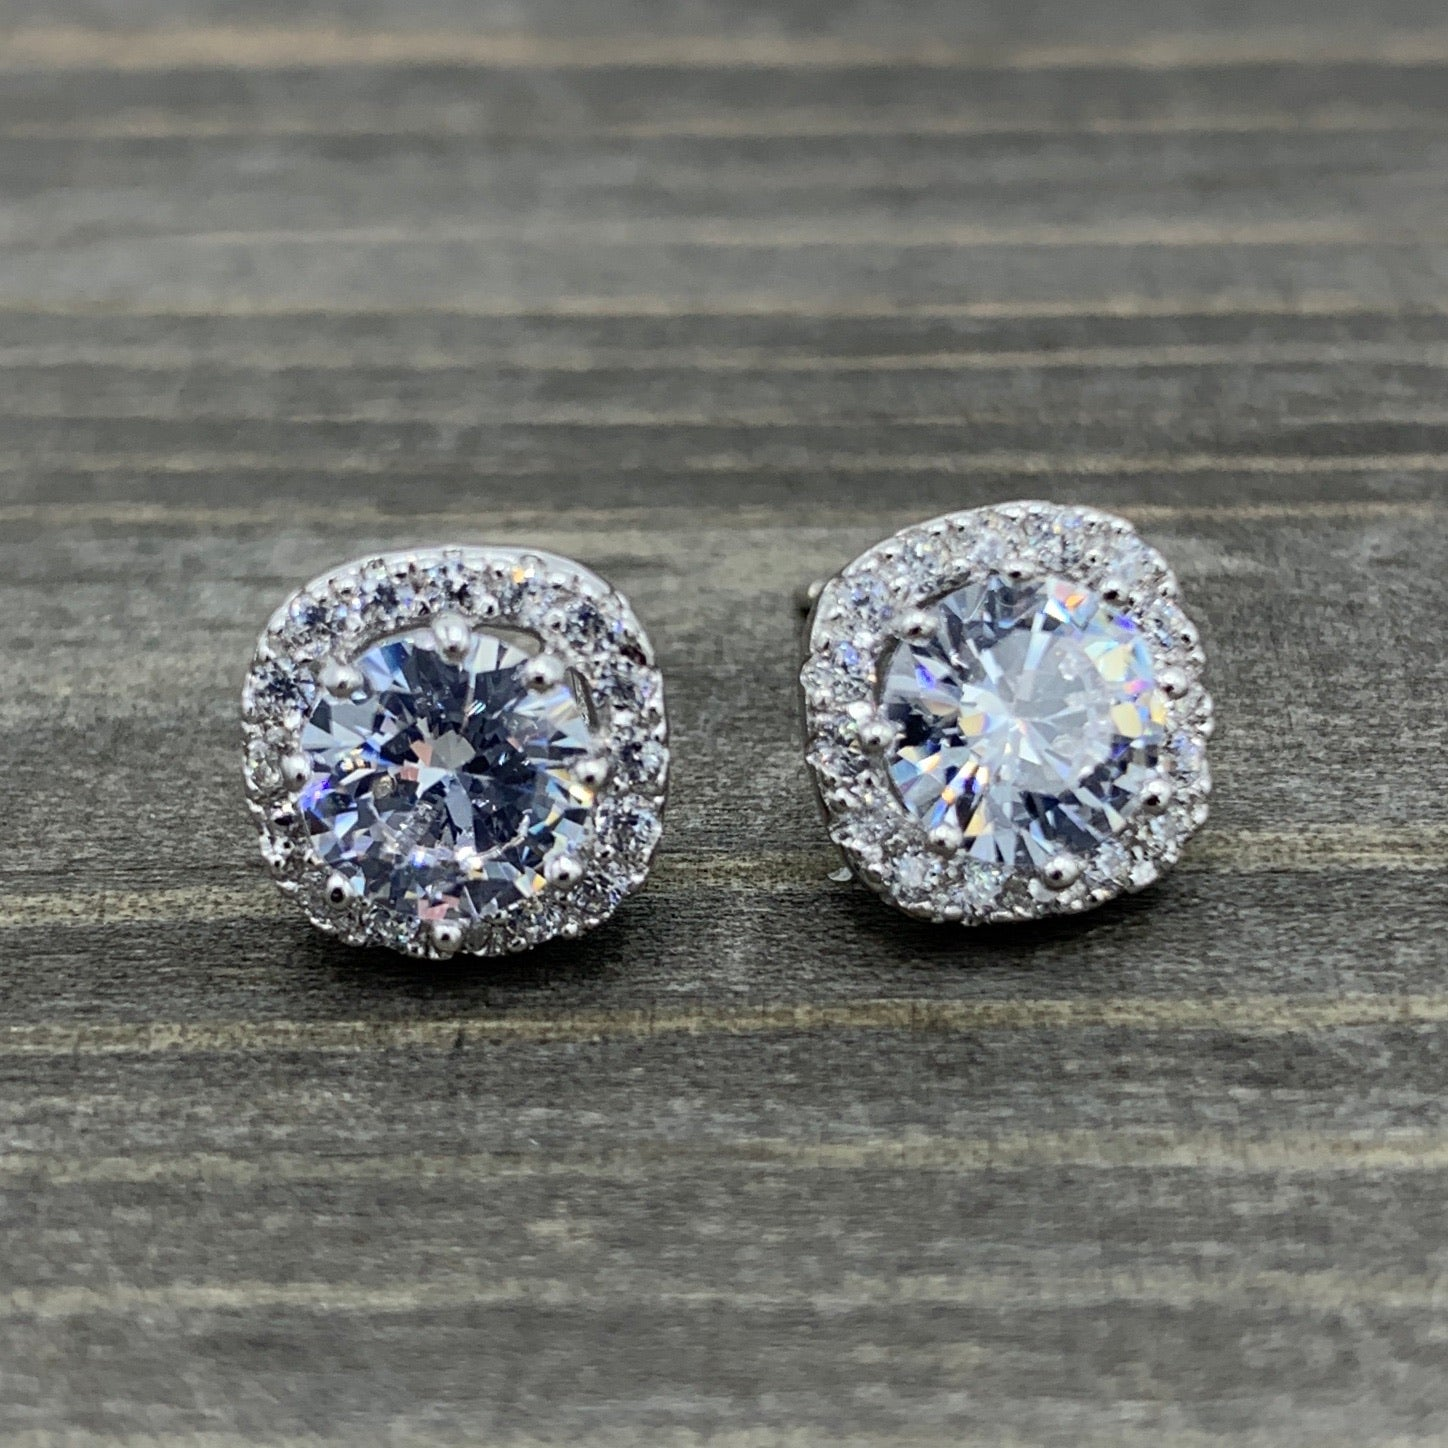 Sparkling Halo Sterling Silver Stud Earrings